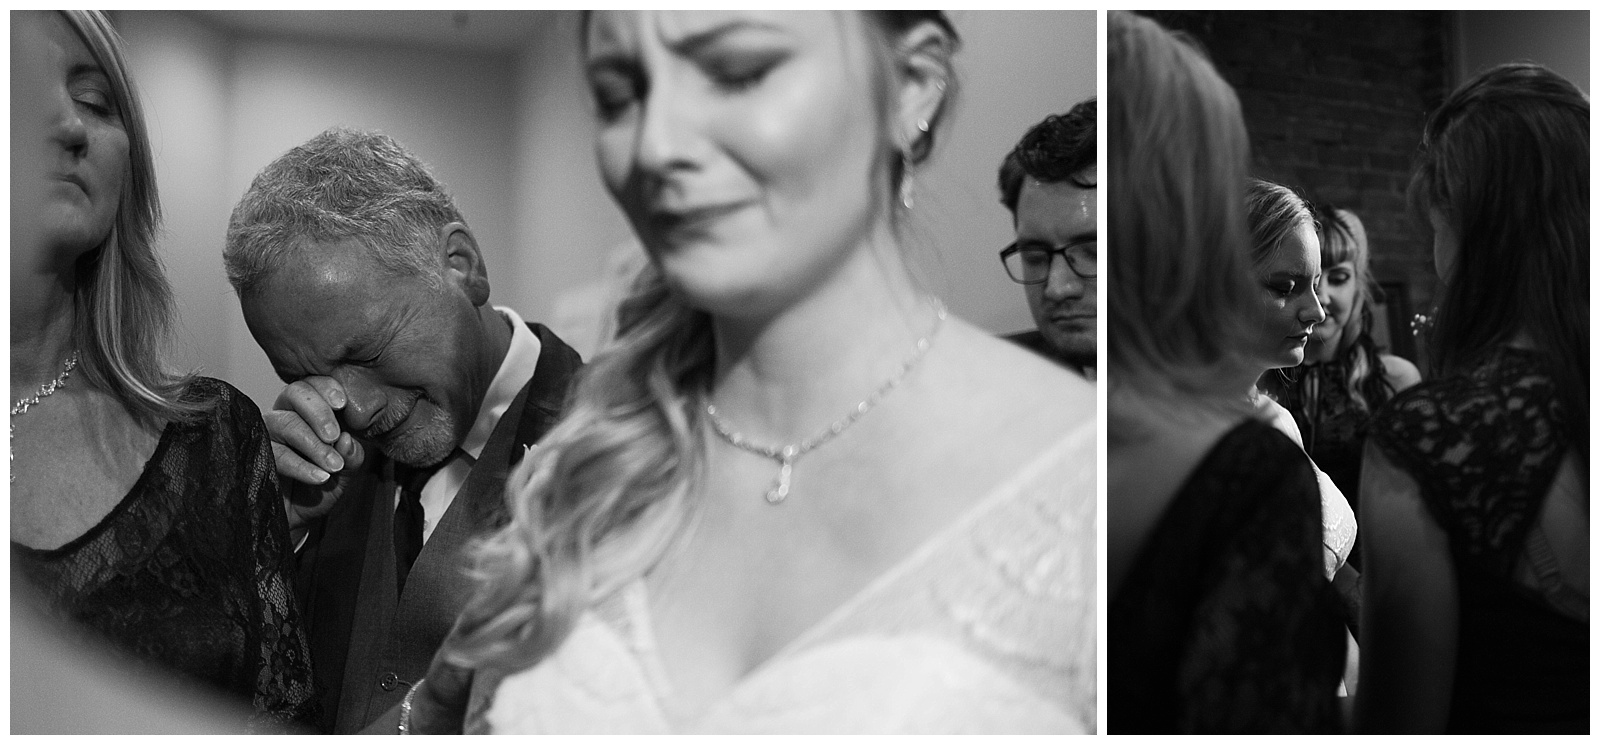 There was not a dry eye in the room during this sweet moment of prayer between Haley's family and friends. Her dad's muffled tears made it hard for us all to compose ourselves!